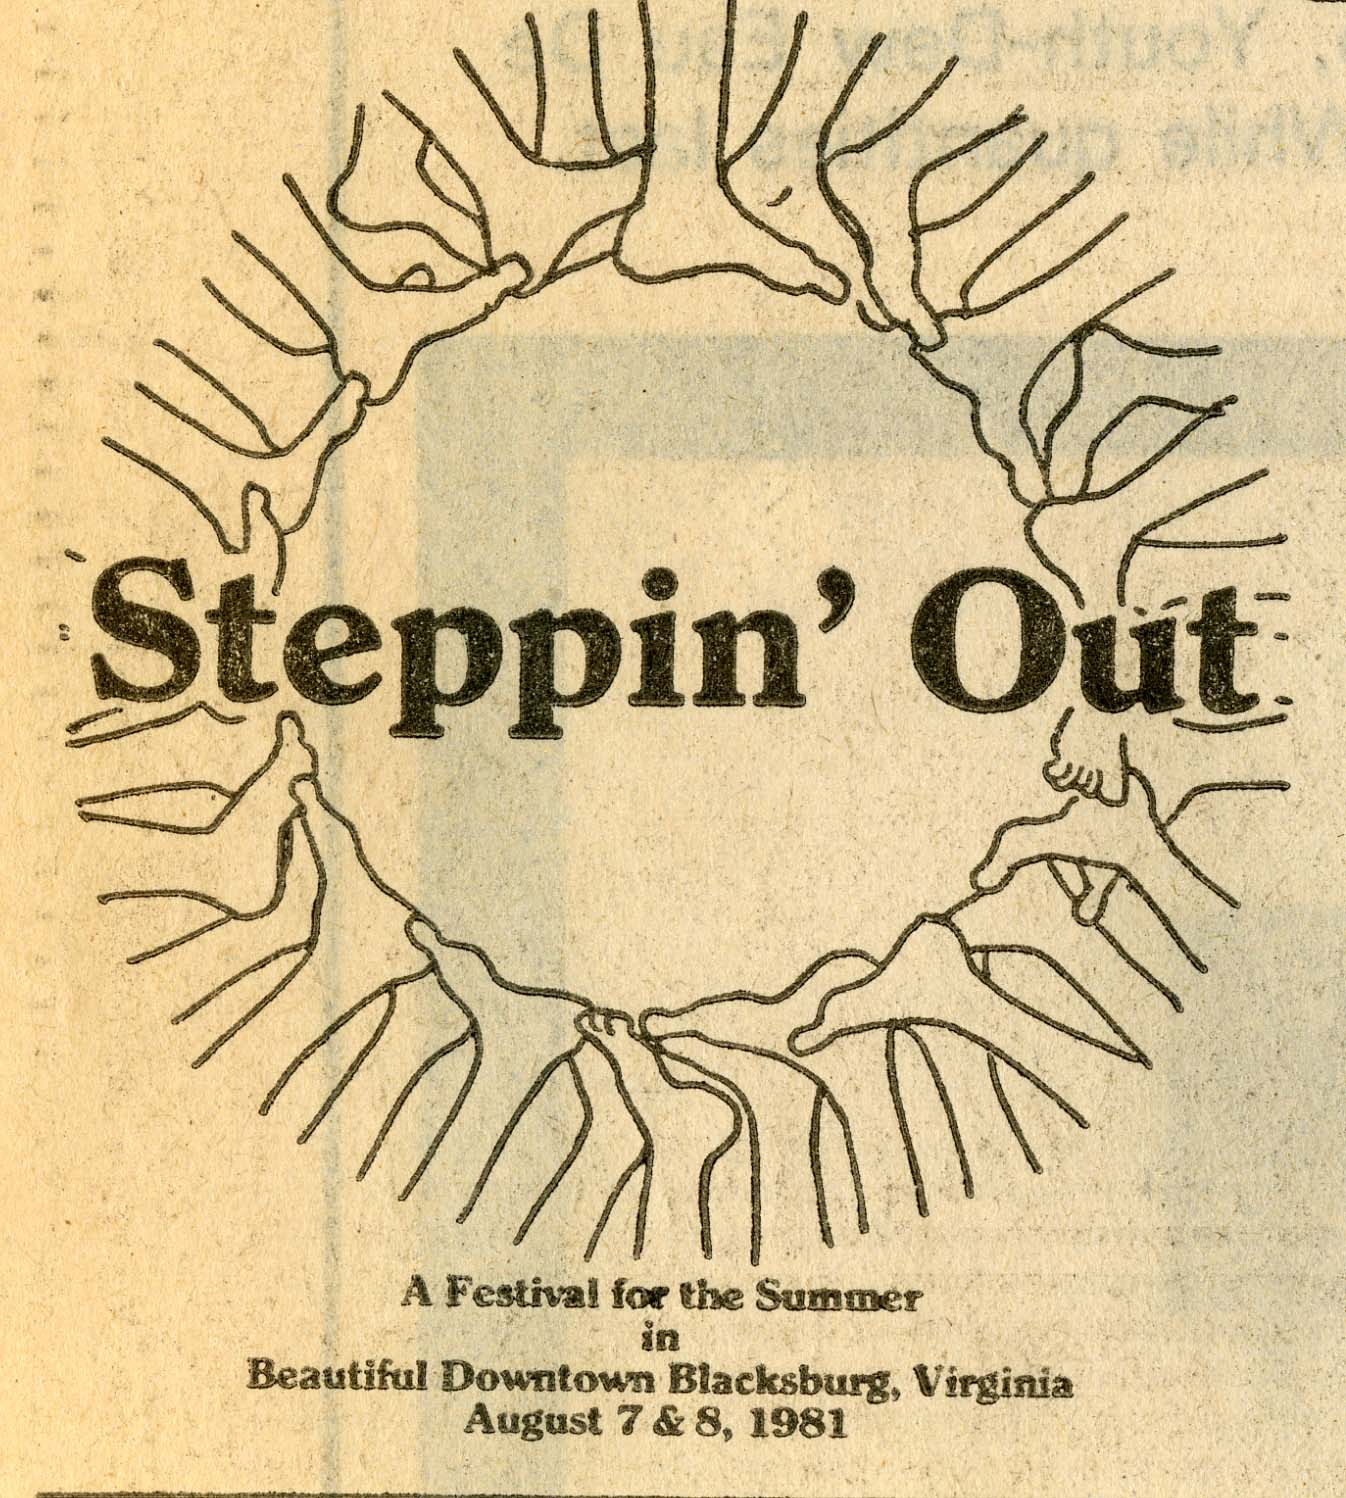 The first Steppin' Out logo, from 1981